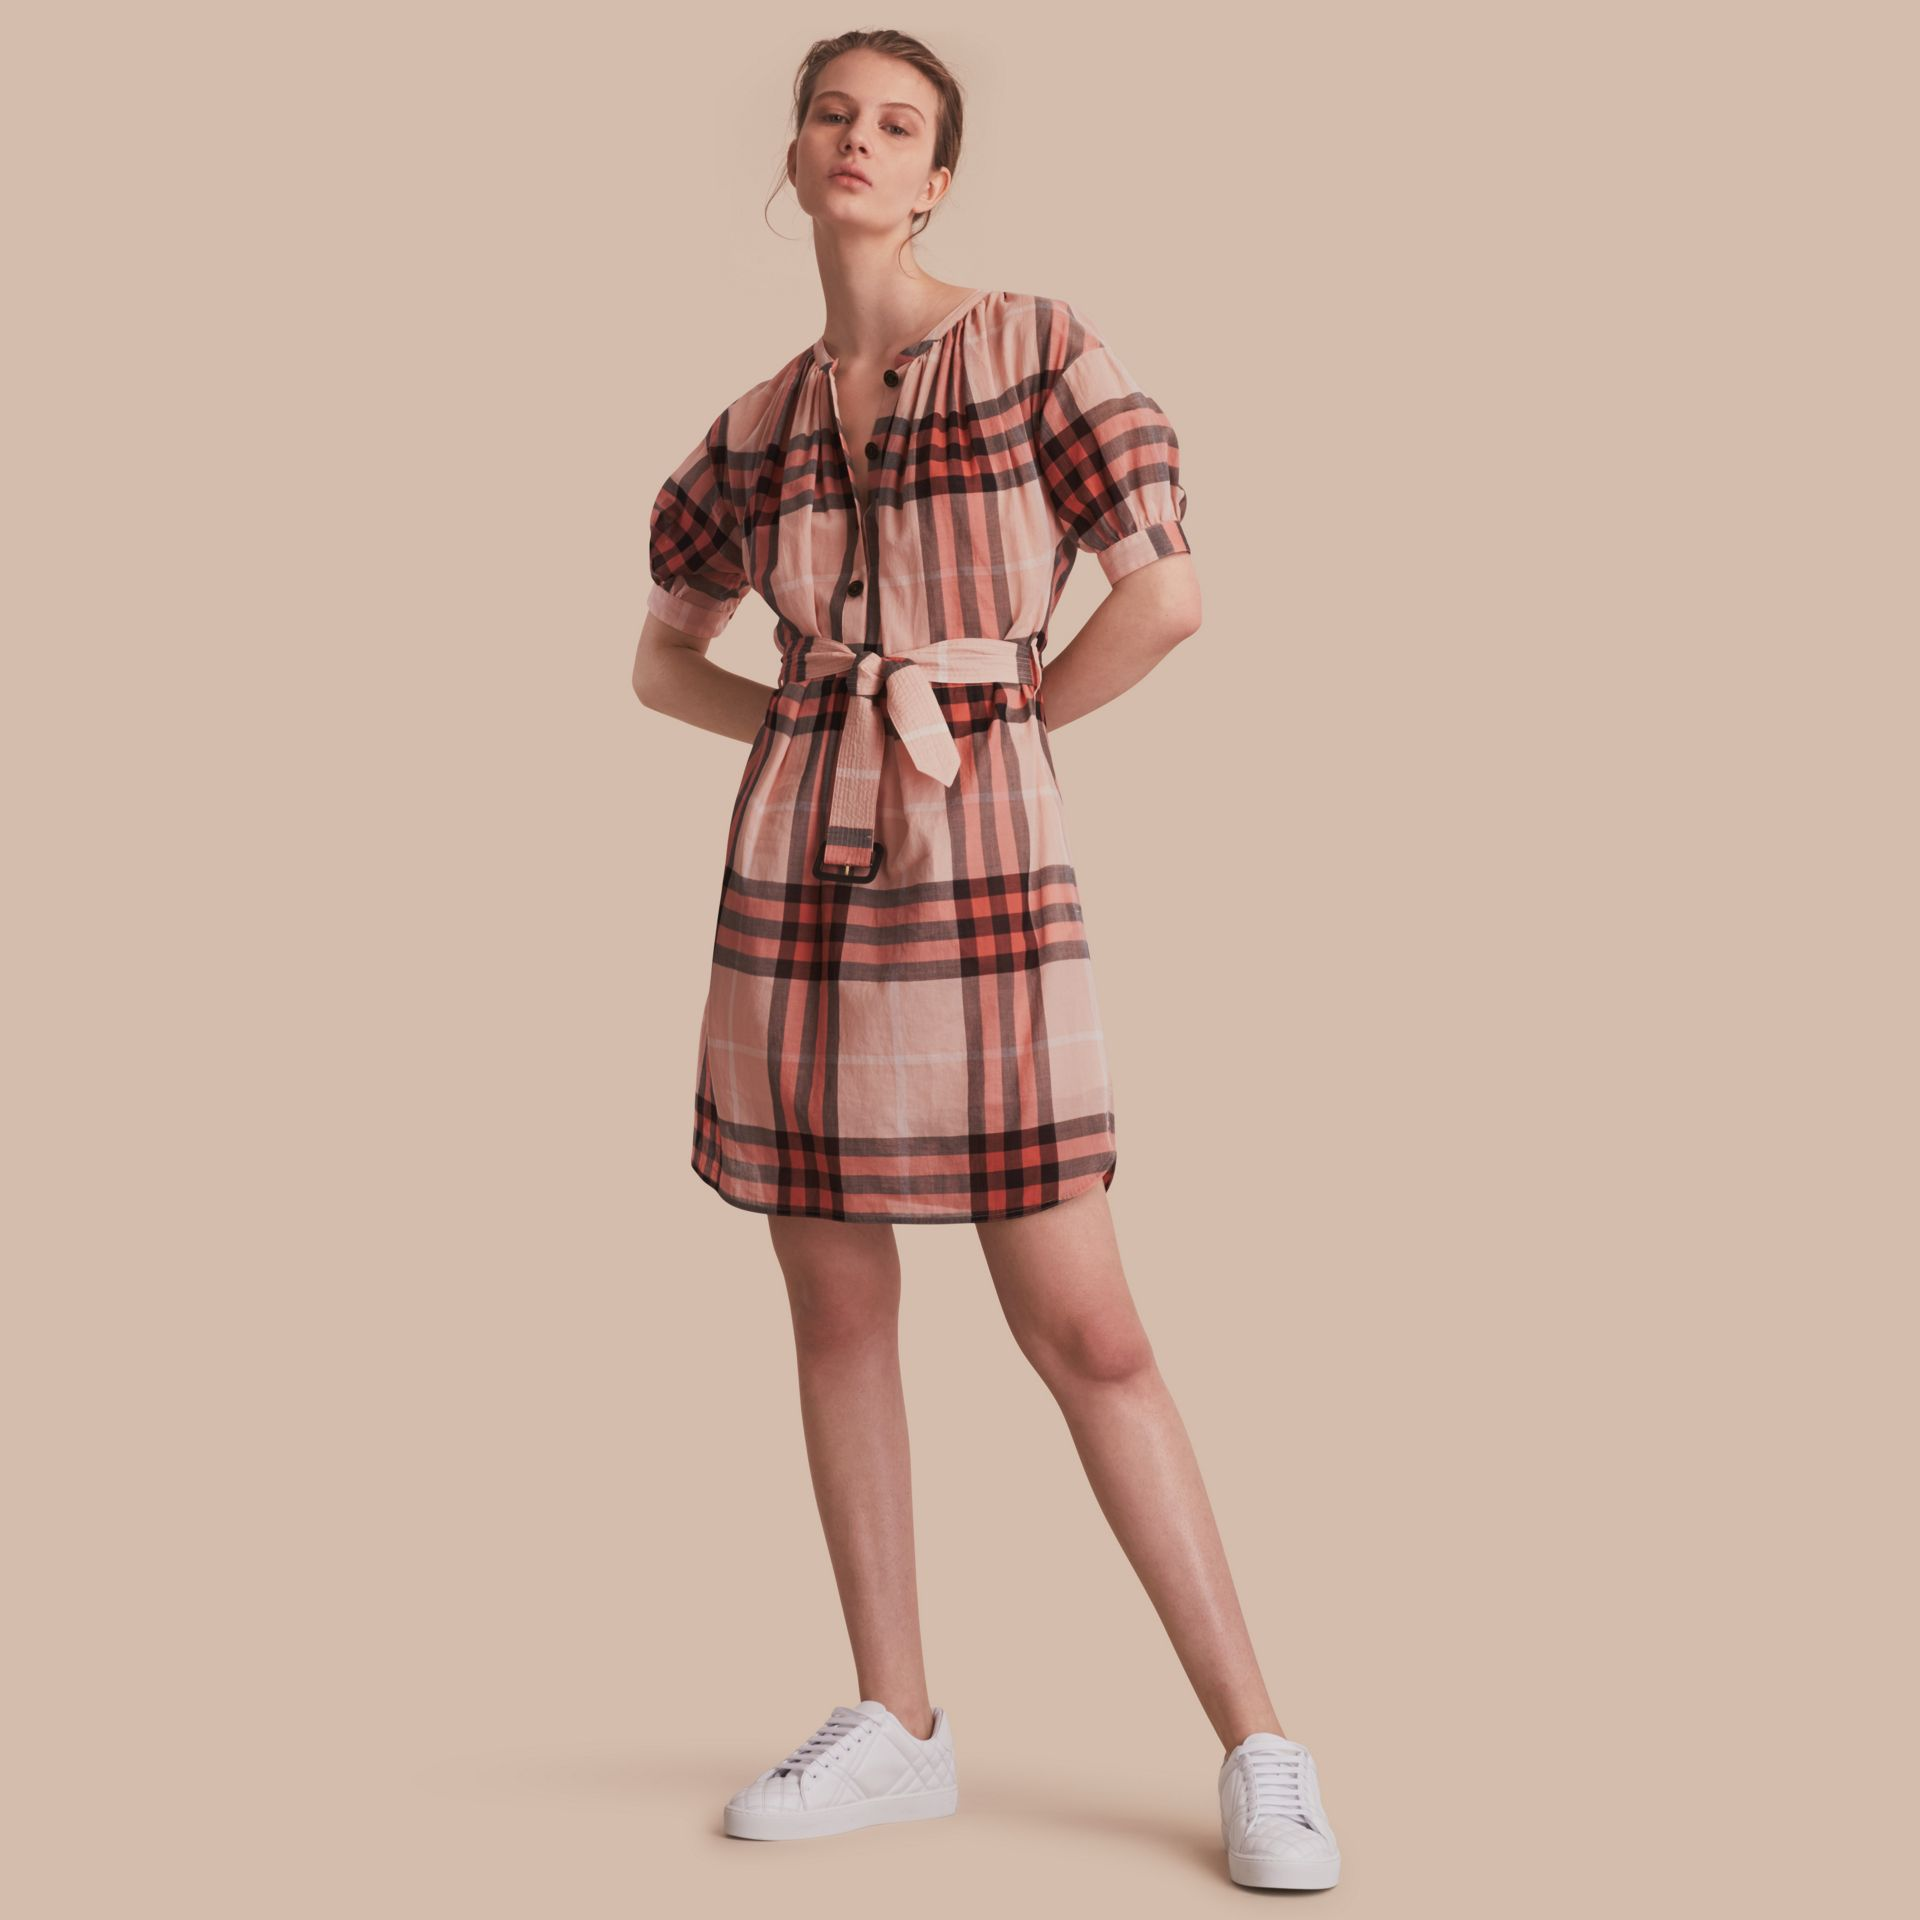 Short-sleeved Collarless Check Cotton Dress in Apricot - Women | Burberry - gallery image 1